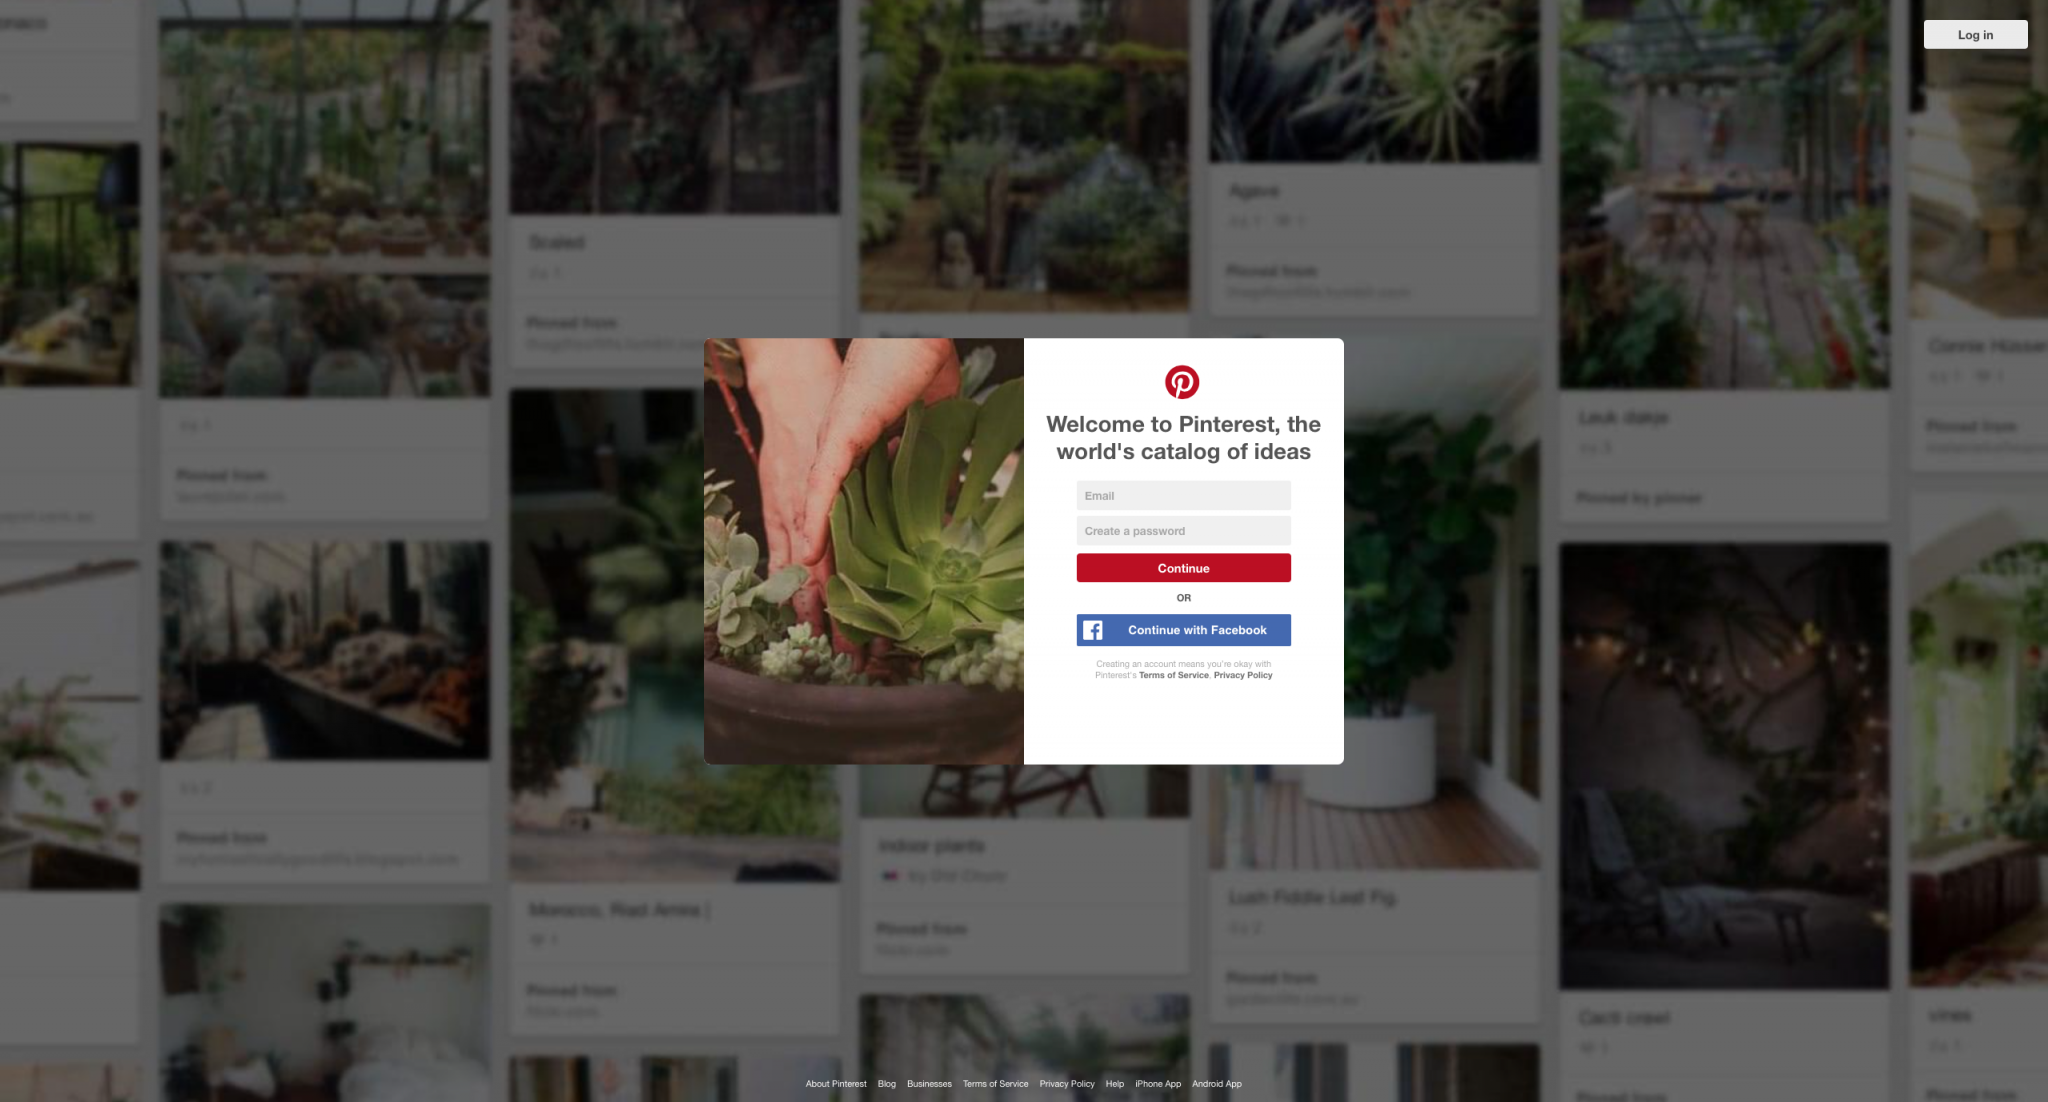 Pinterest Homepage Backdrop for Clarification